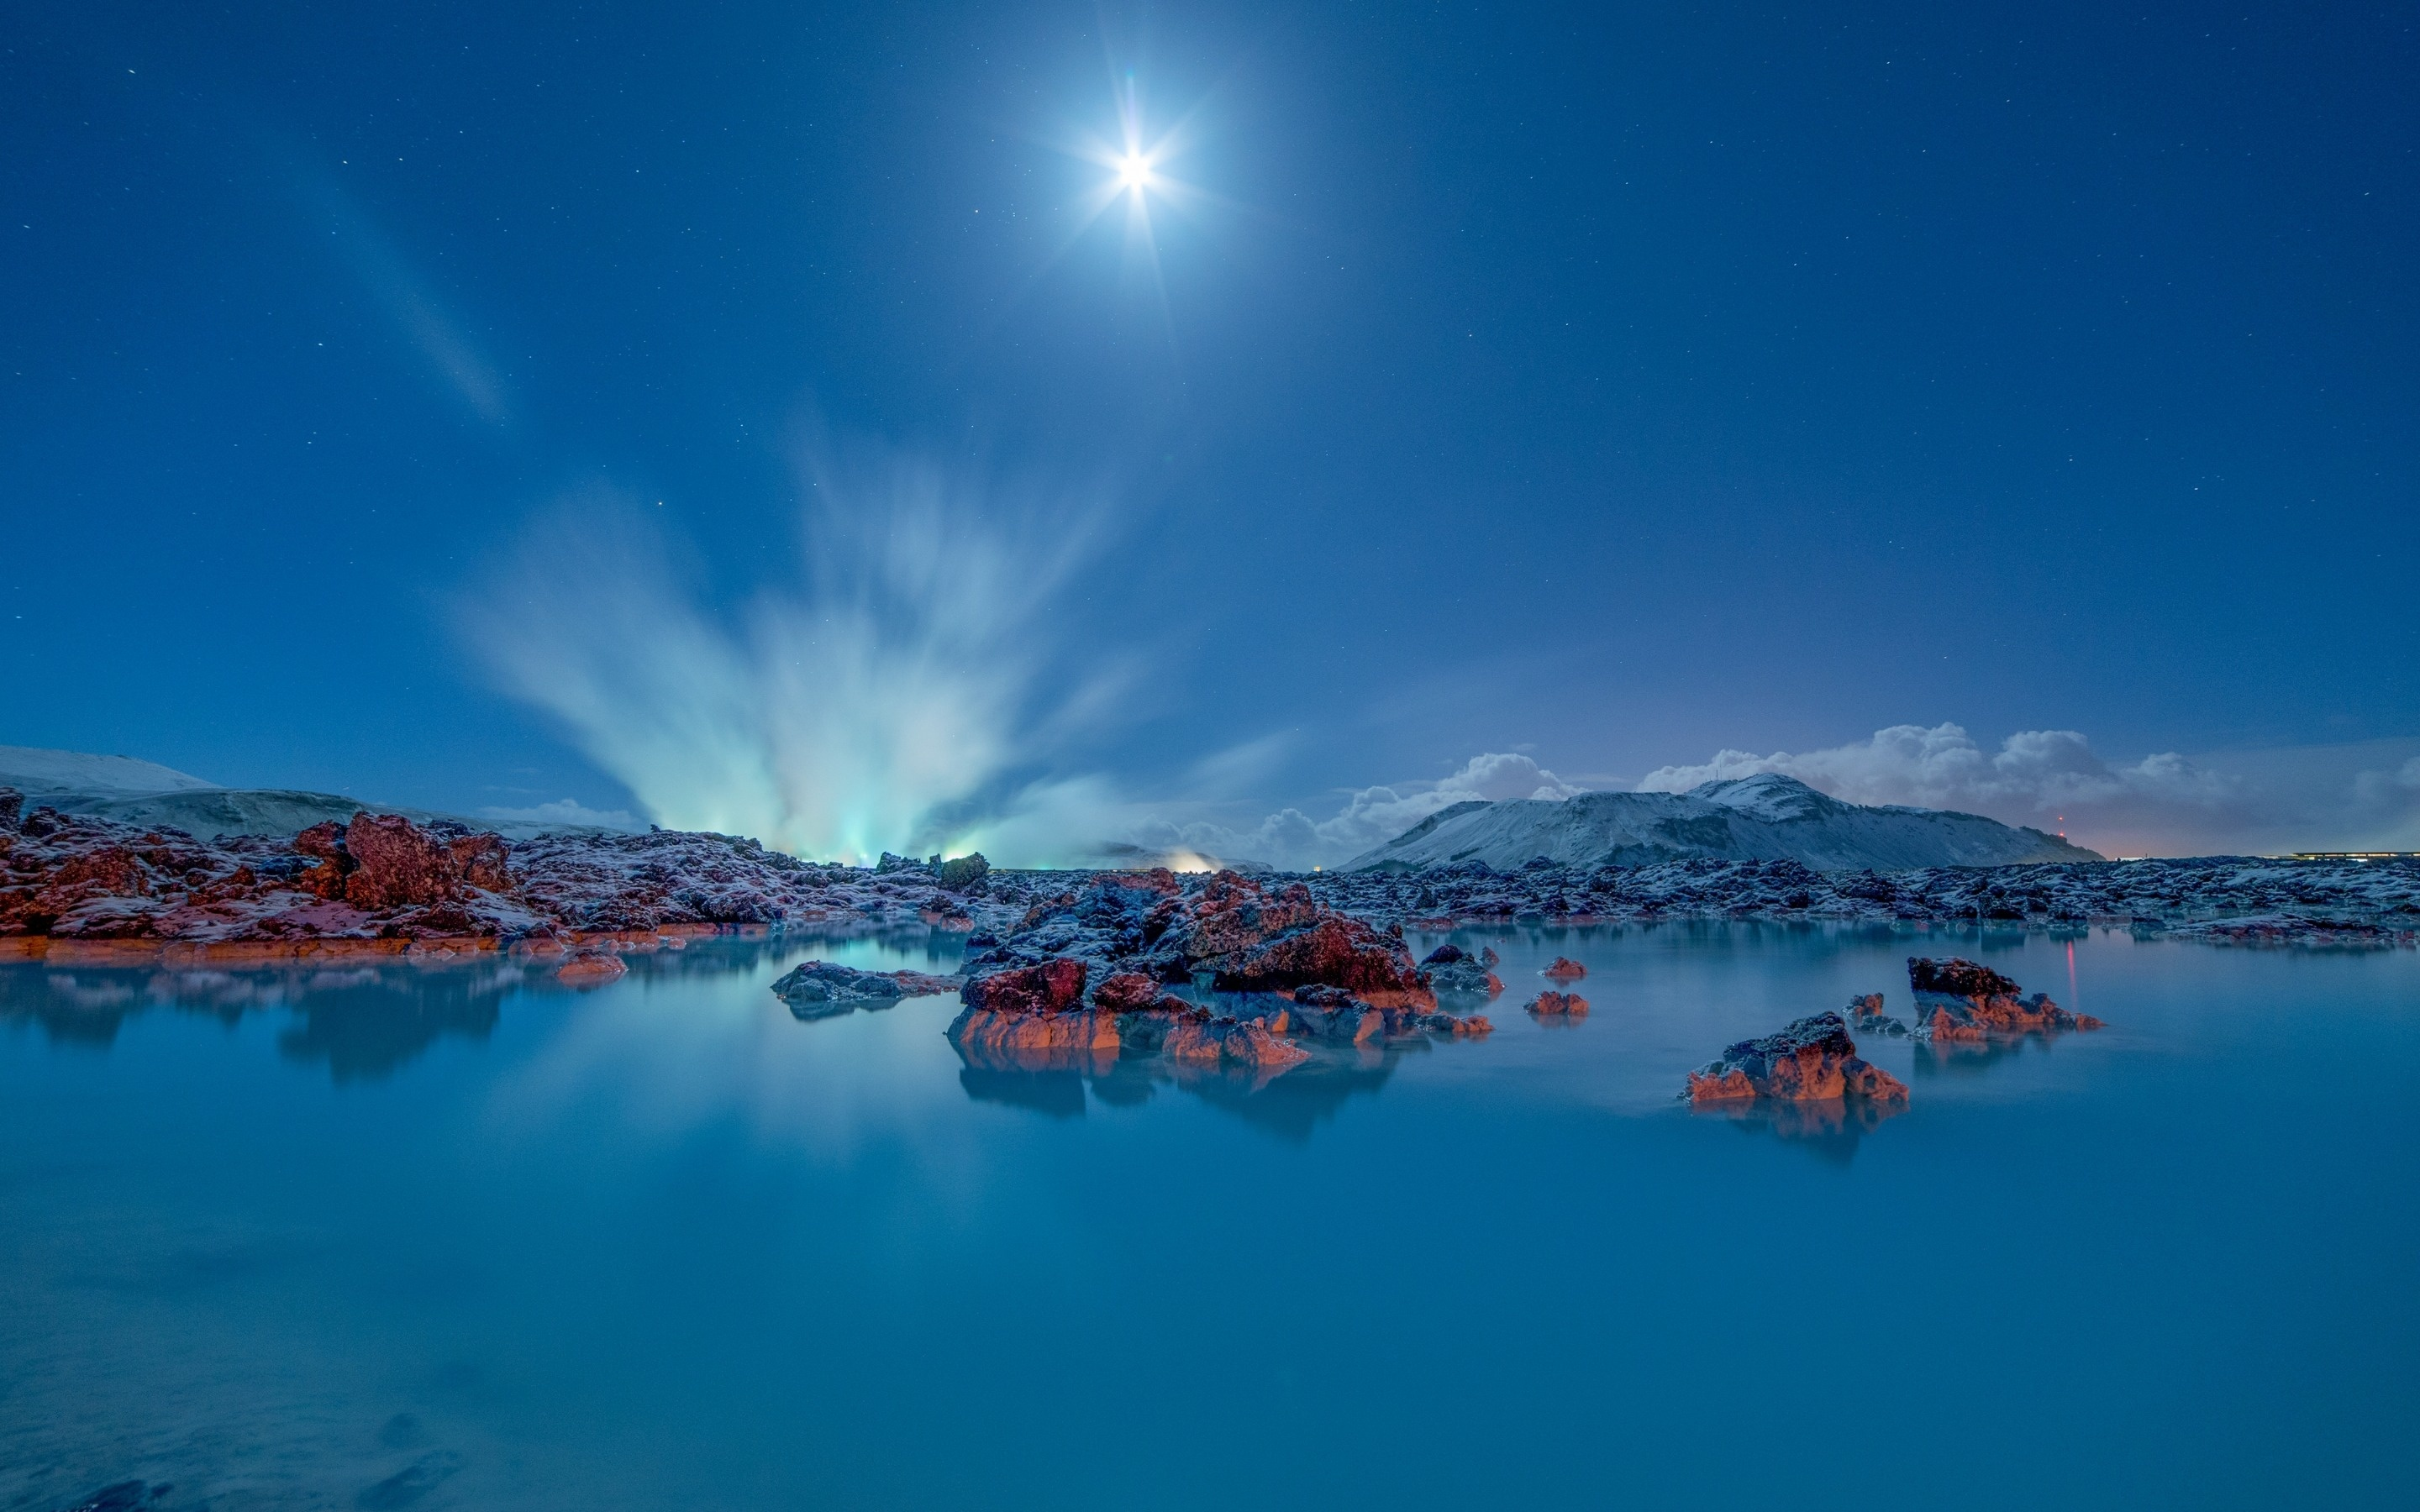 blue lagoon grindavik iceland wallpapers - 2880x1800 - 1169712